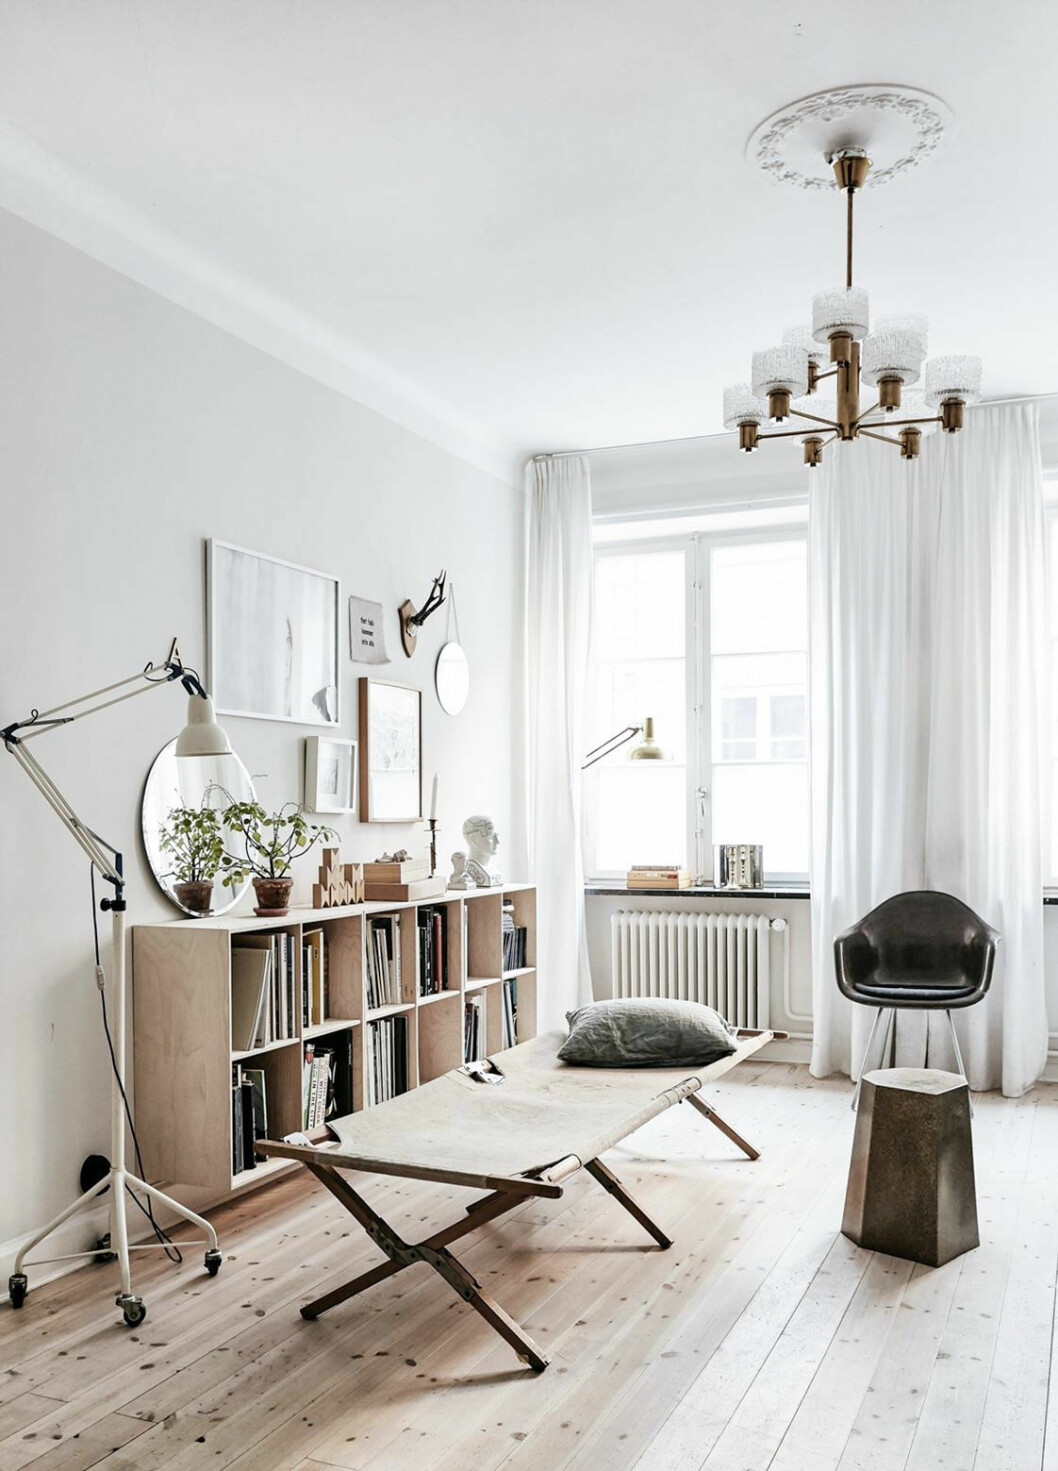 Minimalistic and scandinavian interior styling.